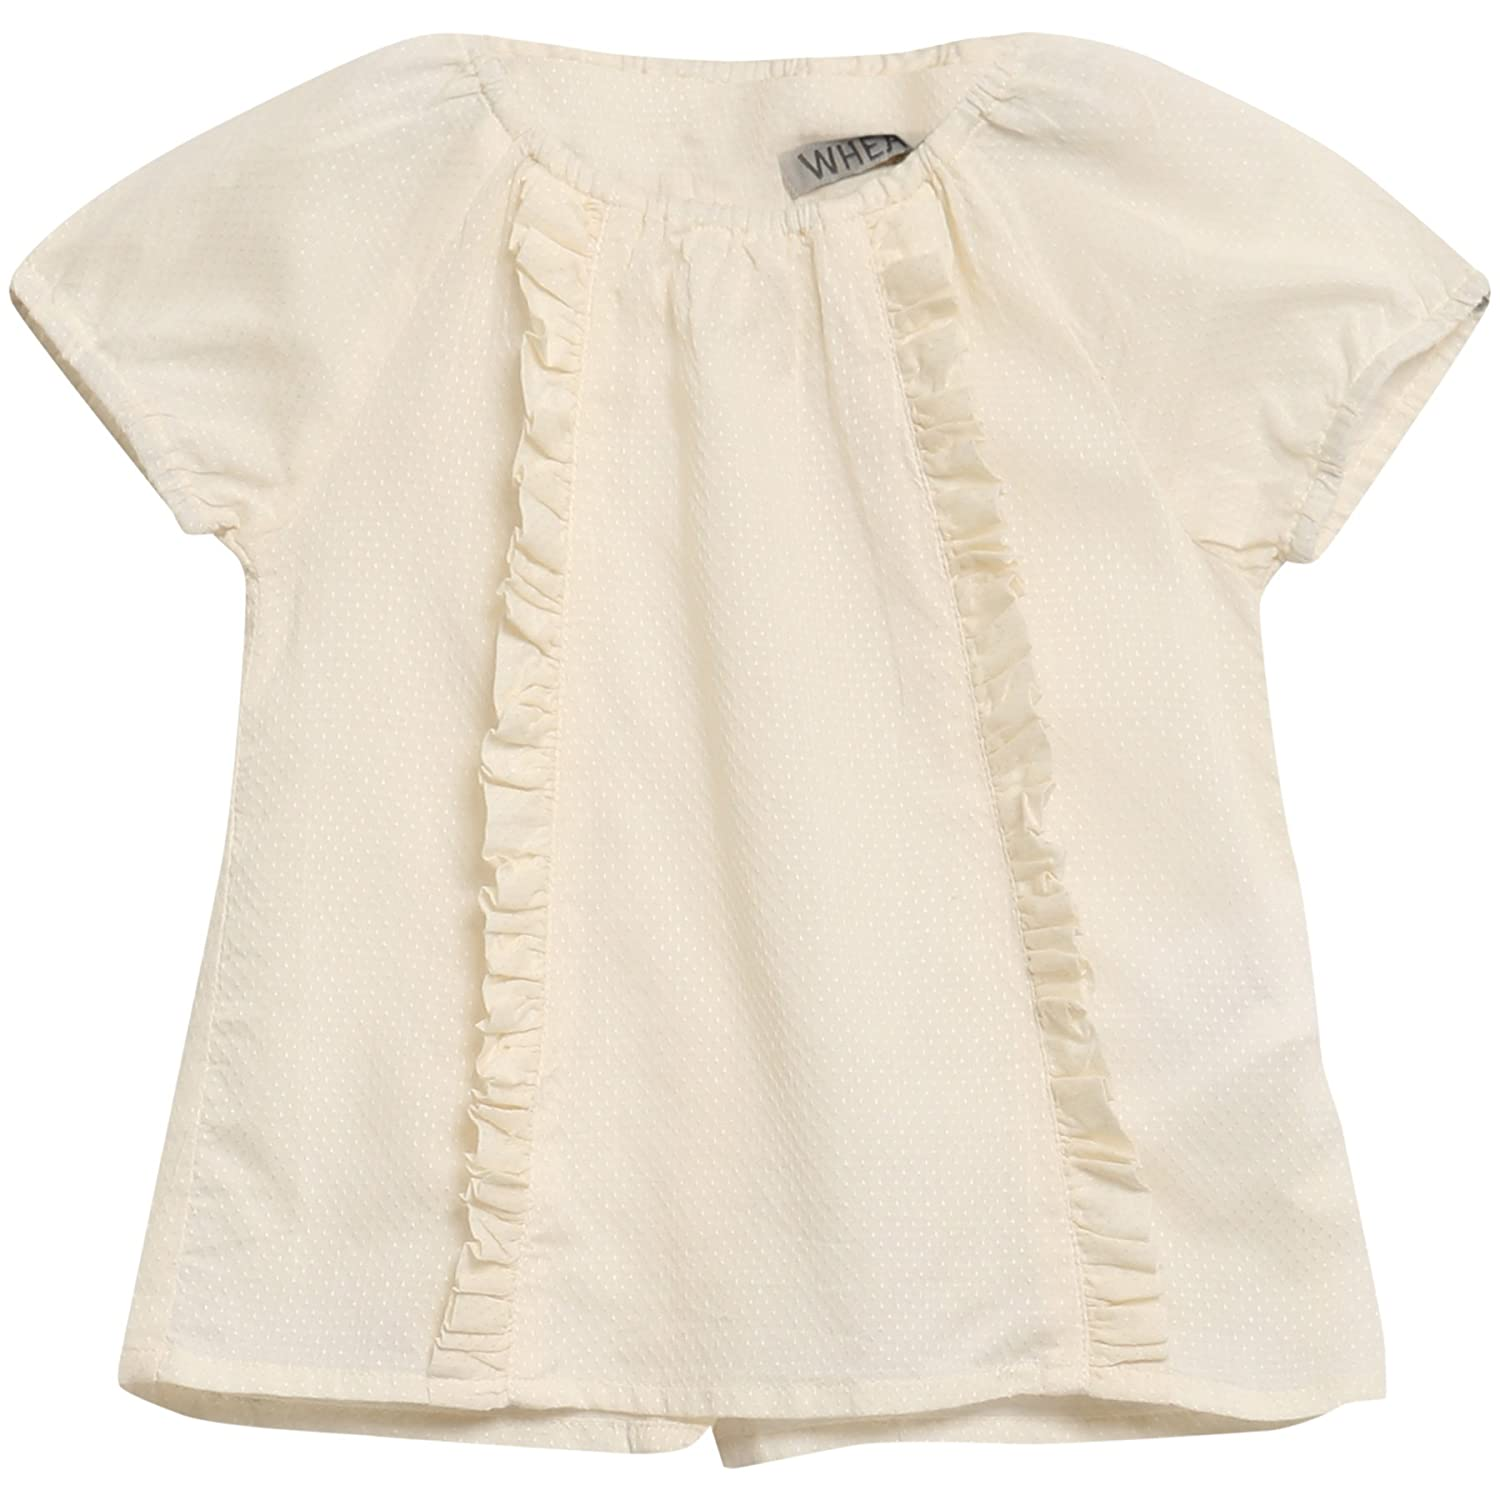 Wheat Baby Girls' Bluse Becca Blouse 4609-45